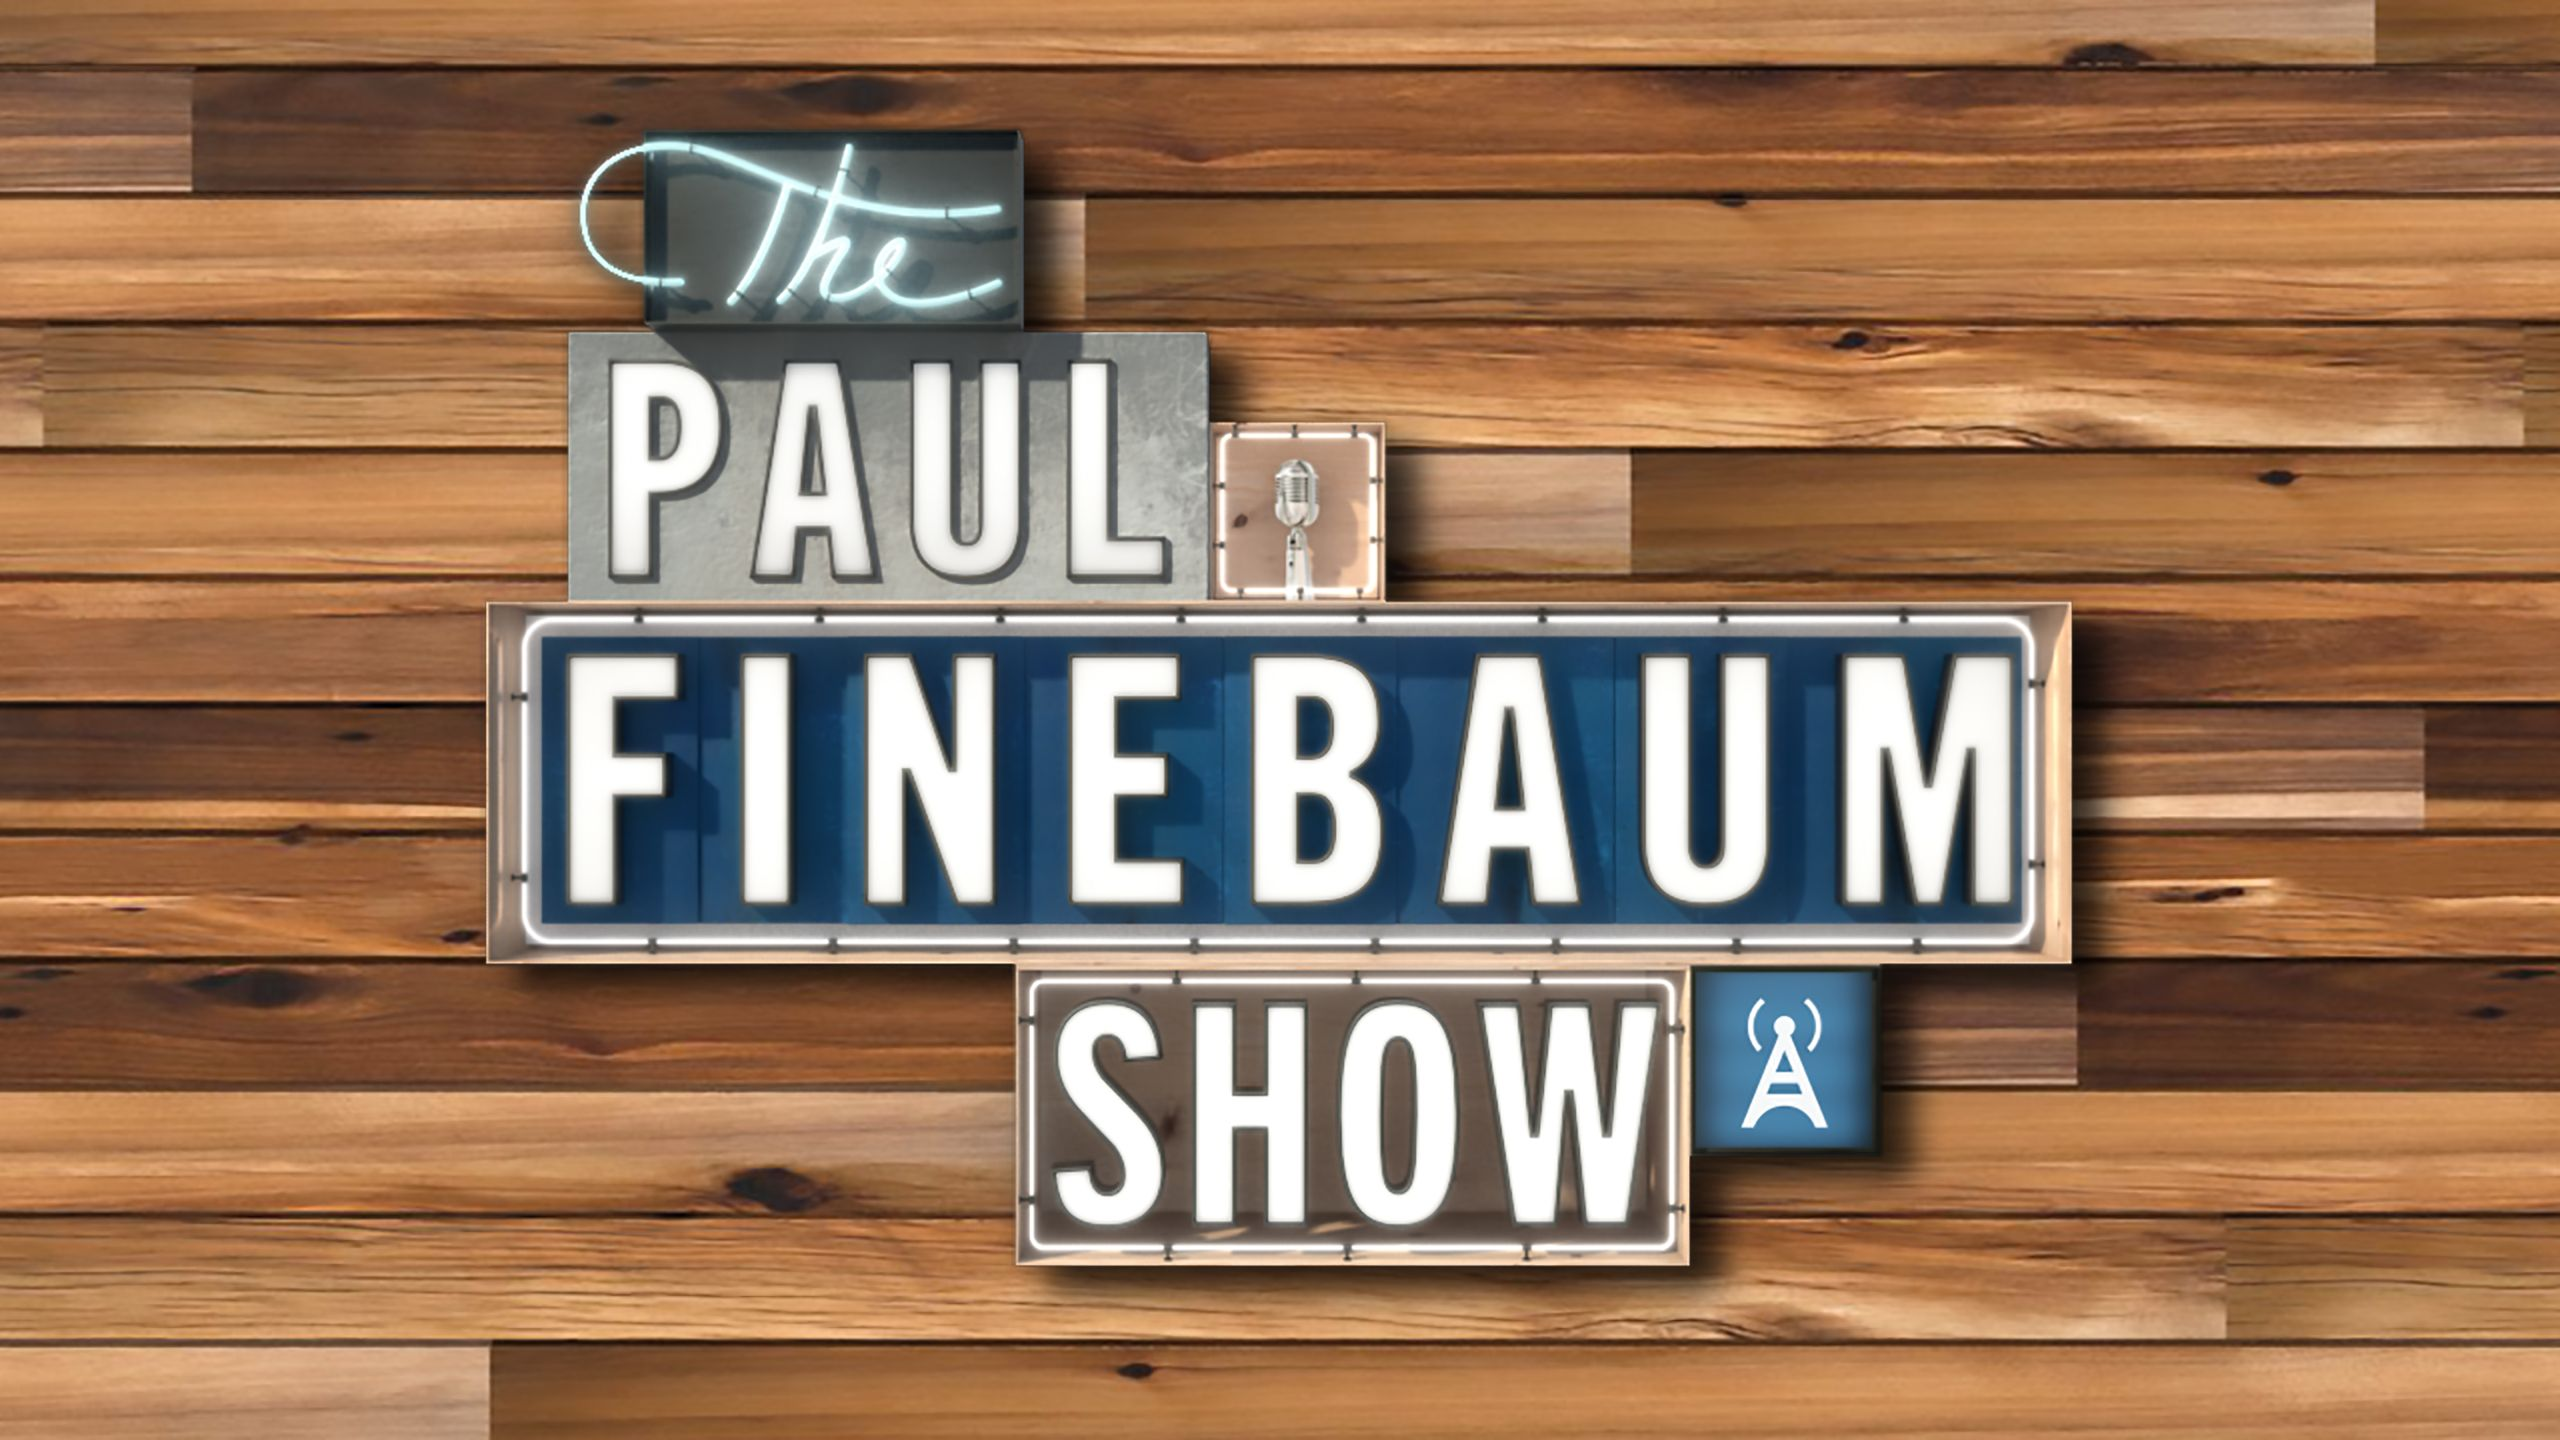 Thu, 2/22 - The Paul Finebaum Show